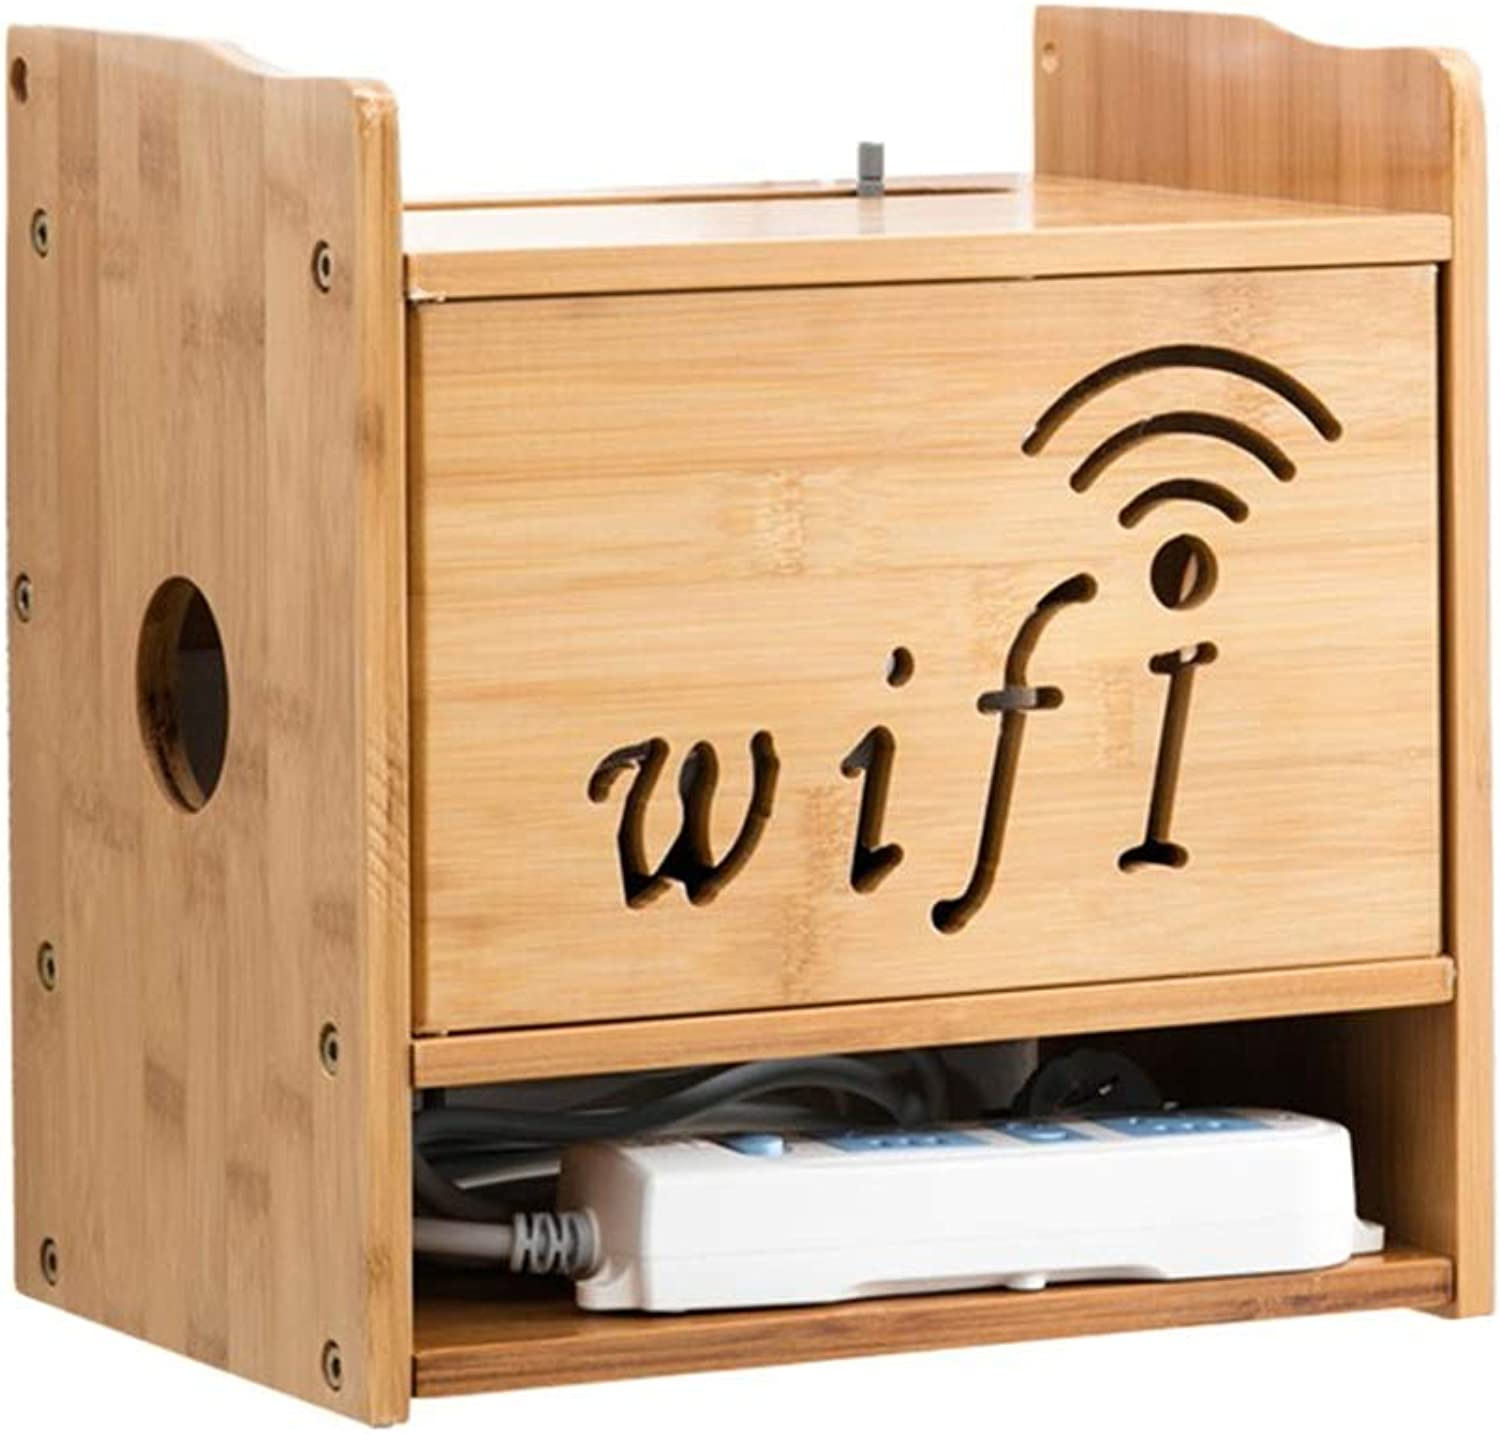 JINLINE Wooden Router Remote Controller WiFi Router Storage Box 3 Layer TV Accessories TV Box Set-top Box Wall-Mounted TV Stand (color   Wood color)